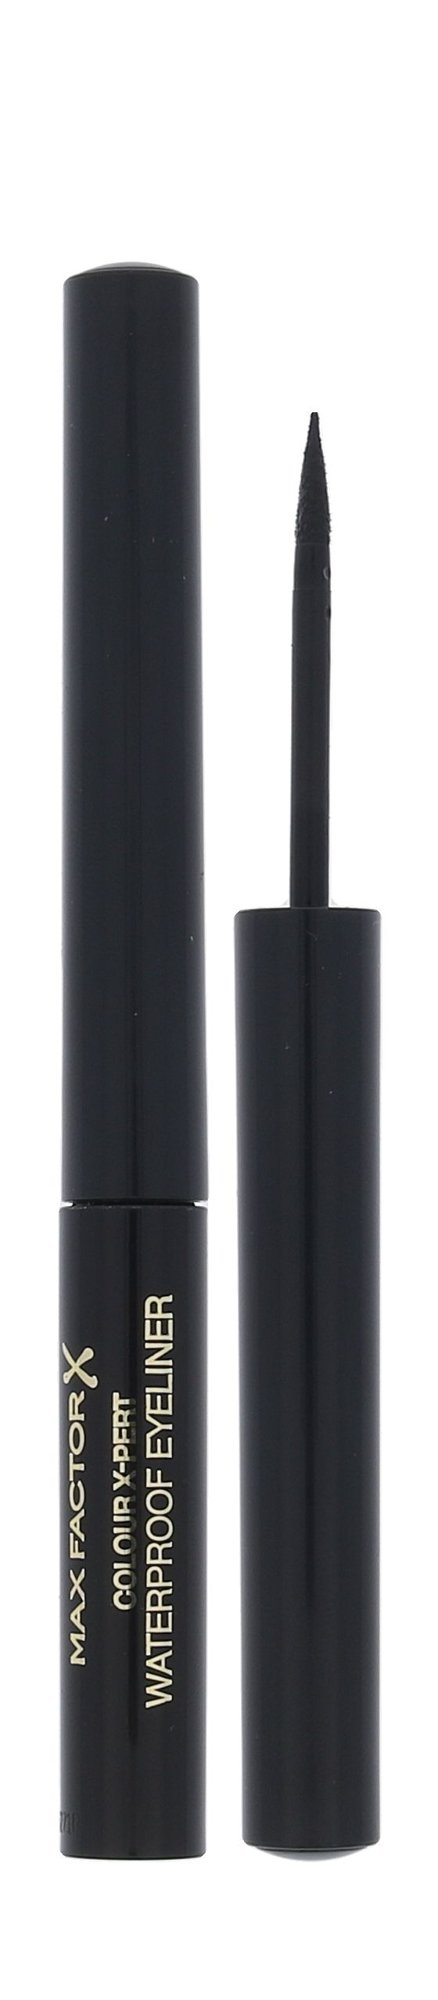 Max Factor Colour X-pert Waterproof Eyeliner Cosmetic 5g 01 Deep Black